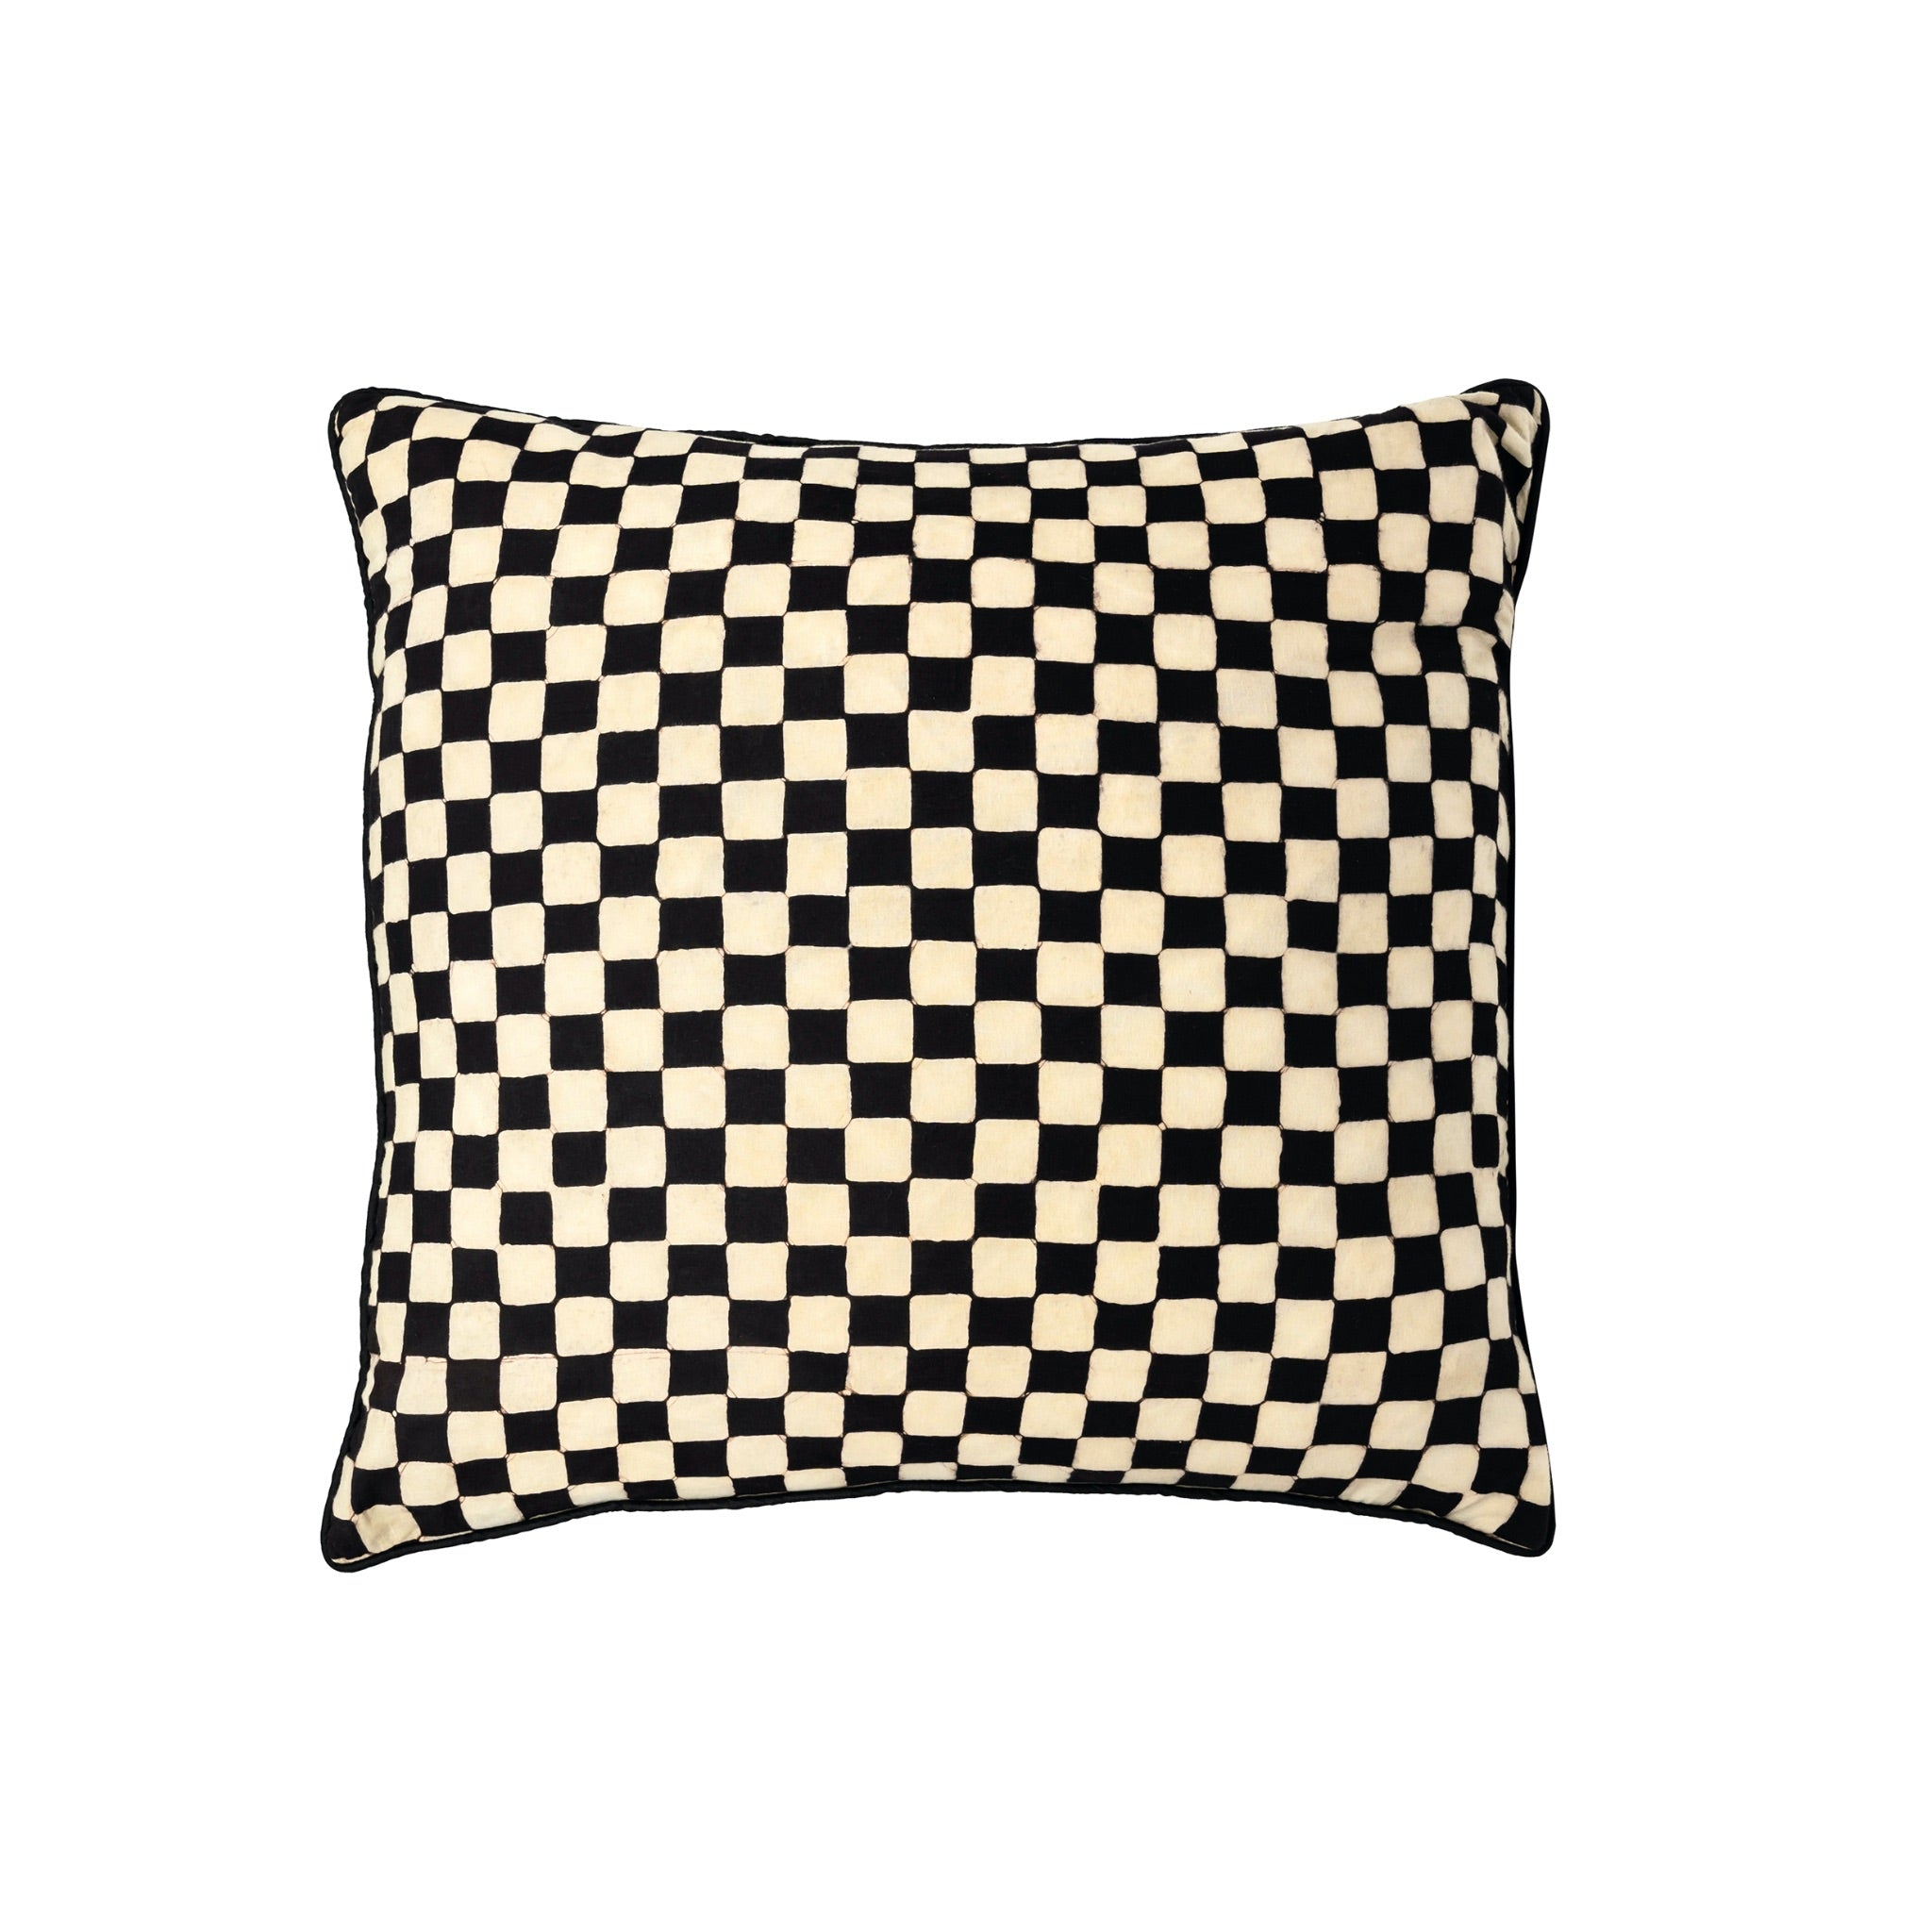 Handmade contemporary batik black and white cushion covers. Five designs - Stripes, check big and small, trellis and dots